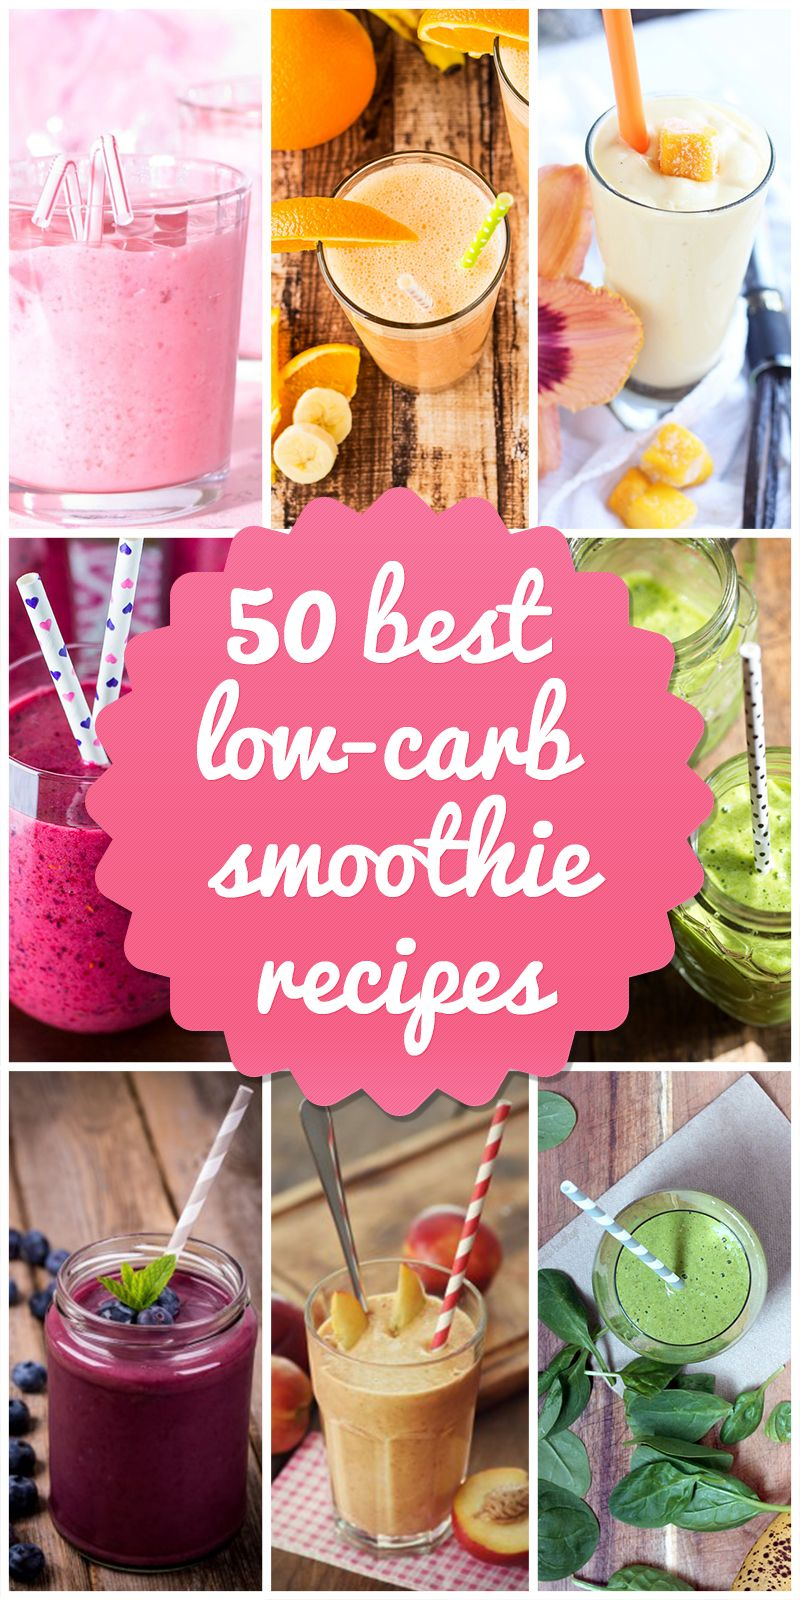 6 Amazing Low Carb Smoothies – Thirst Quenching + Delicious!